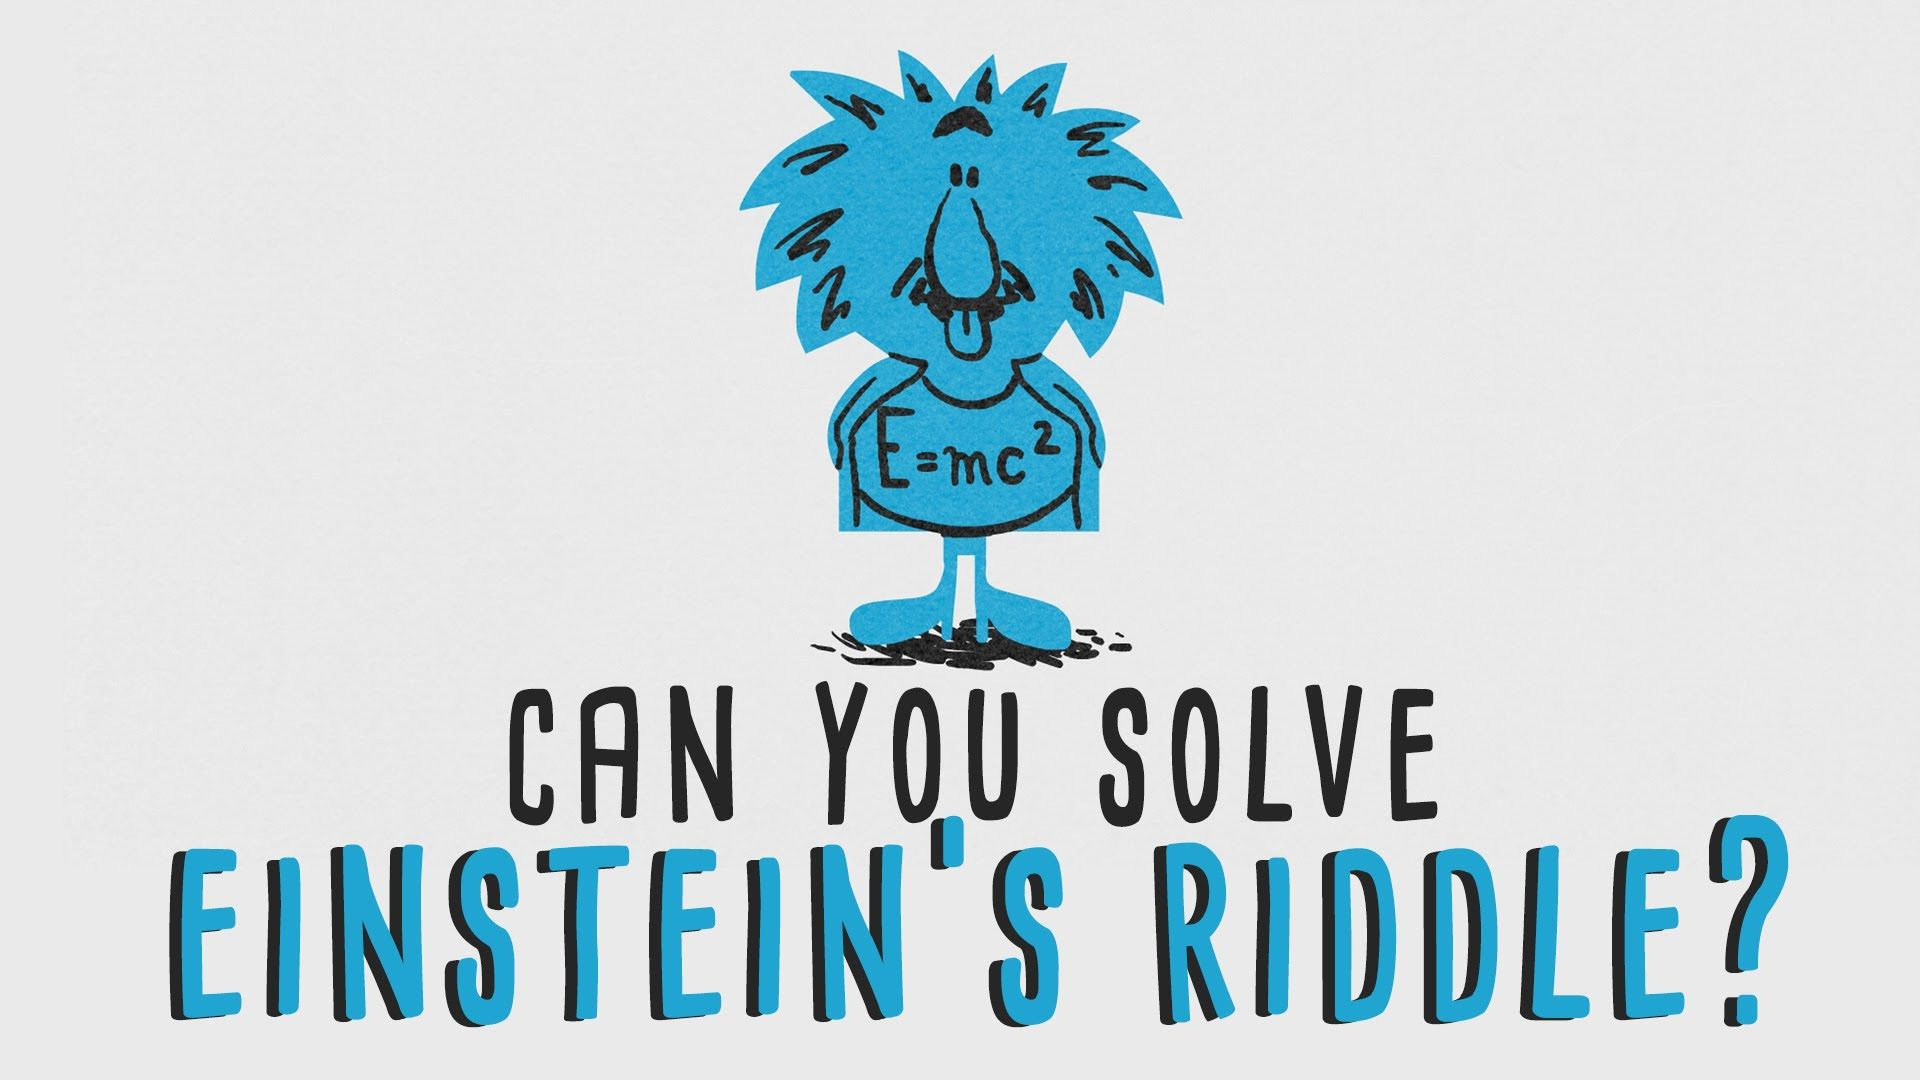 Can you solve the stolen rubies riddle? Dennis Shasha